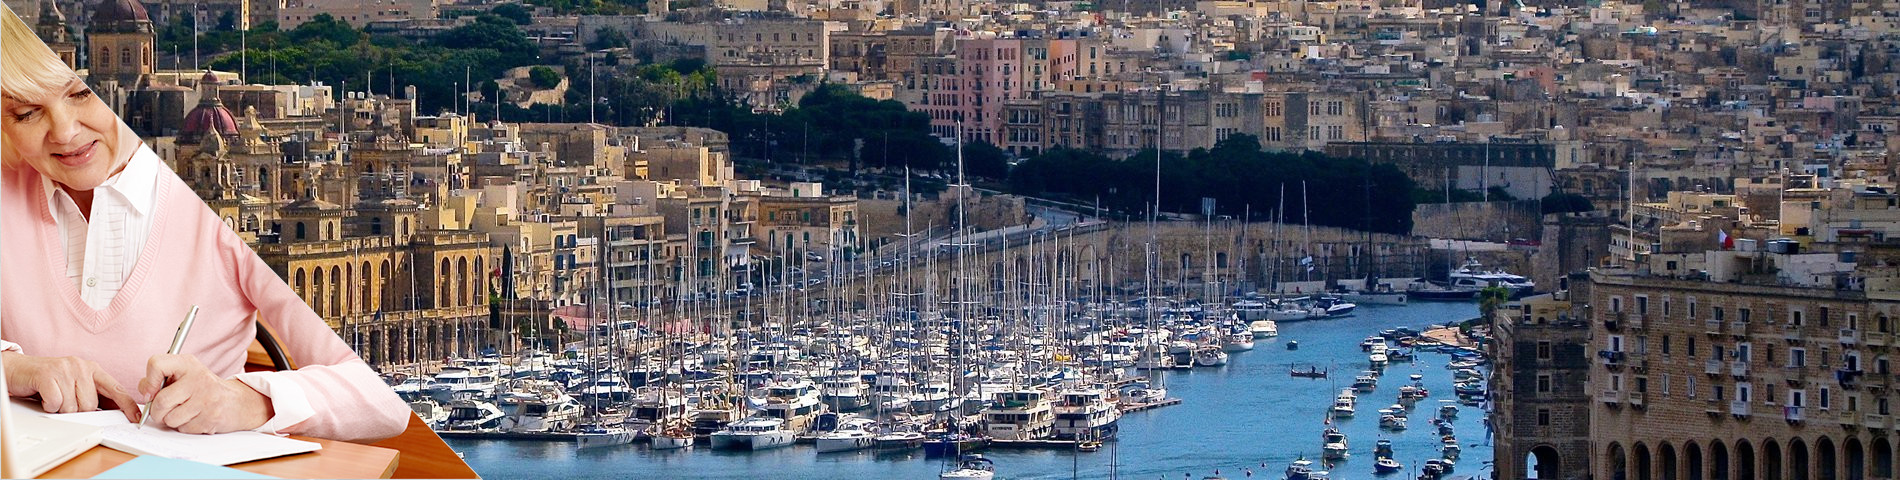 Valletta - Senioren Cursus (50 plus)